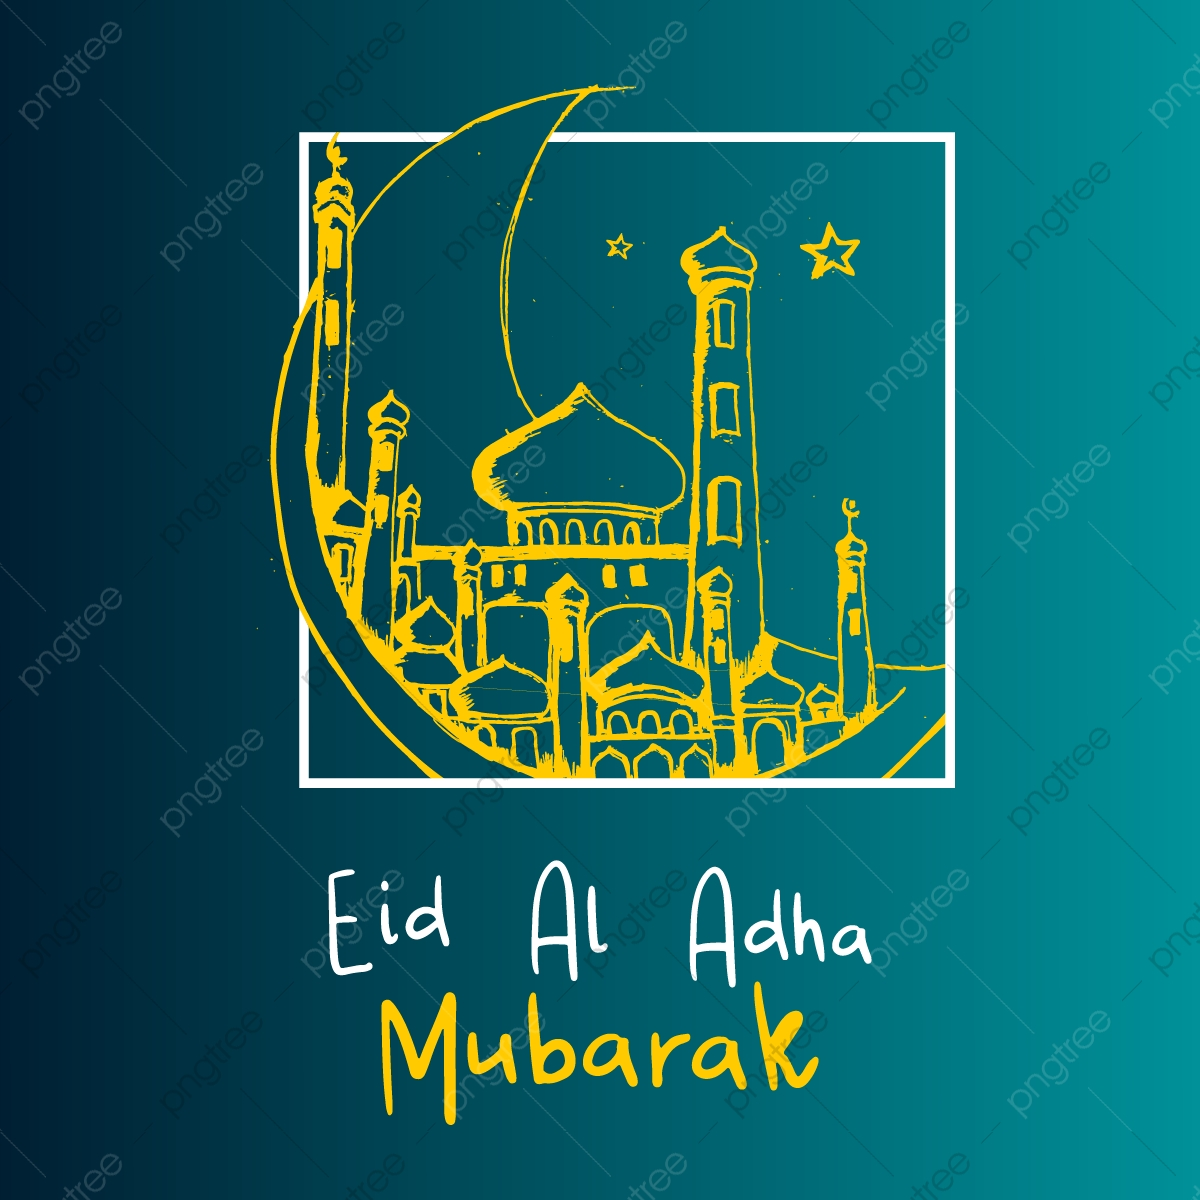 Eid Al Adha Mubarak Banner Background With Hand Drawn Mosque And